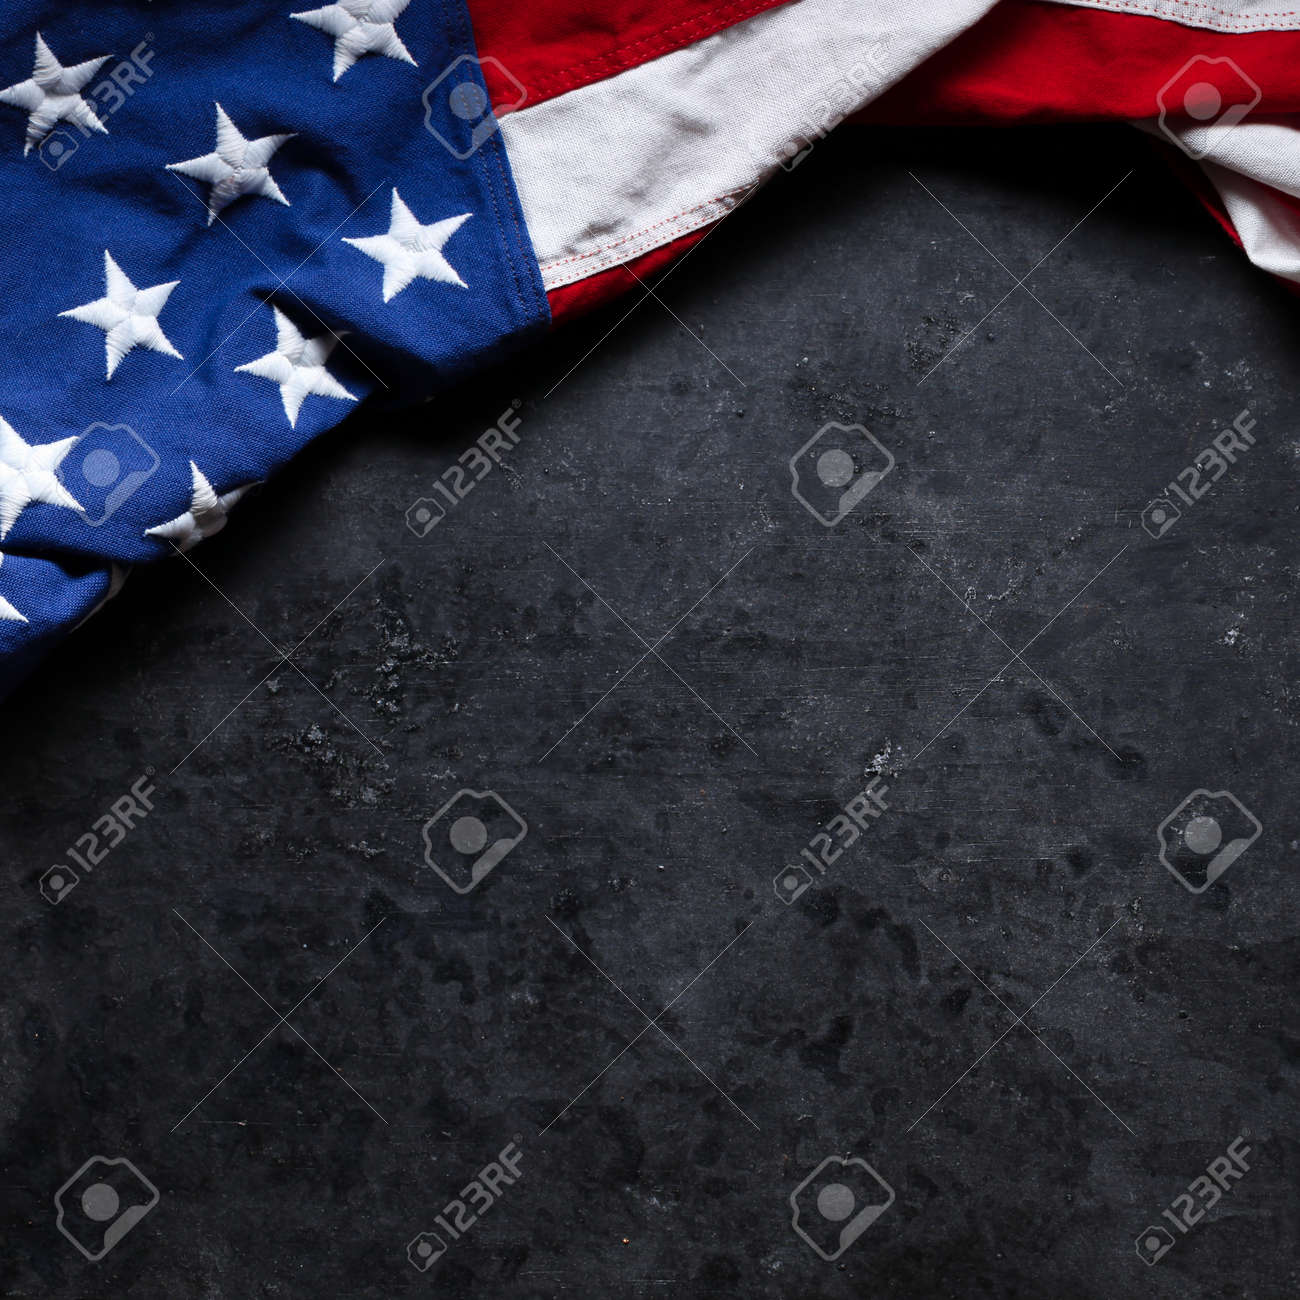 US American flag on worn black background. For USA Memorial day, Veteran's day, Labor day, or 4th of July celebration. With blank space for text. - 170507300